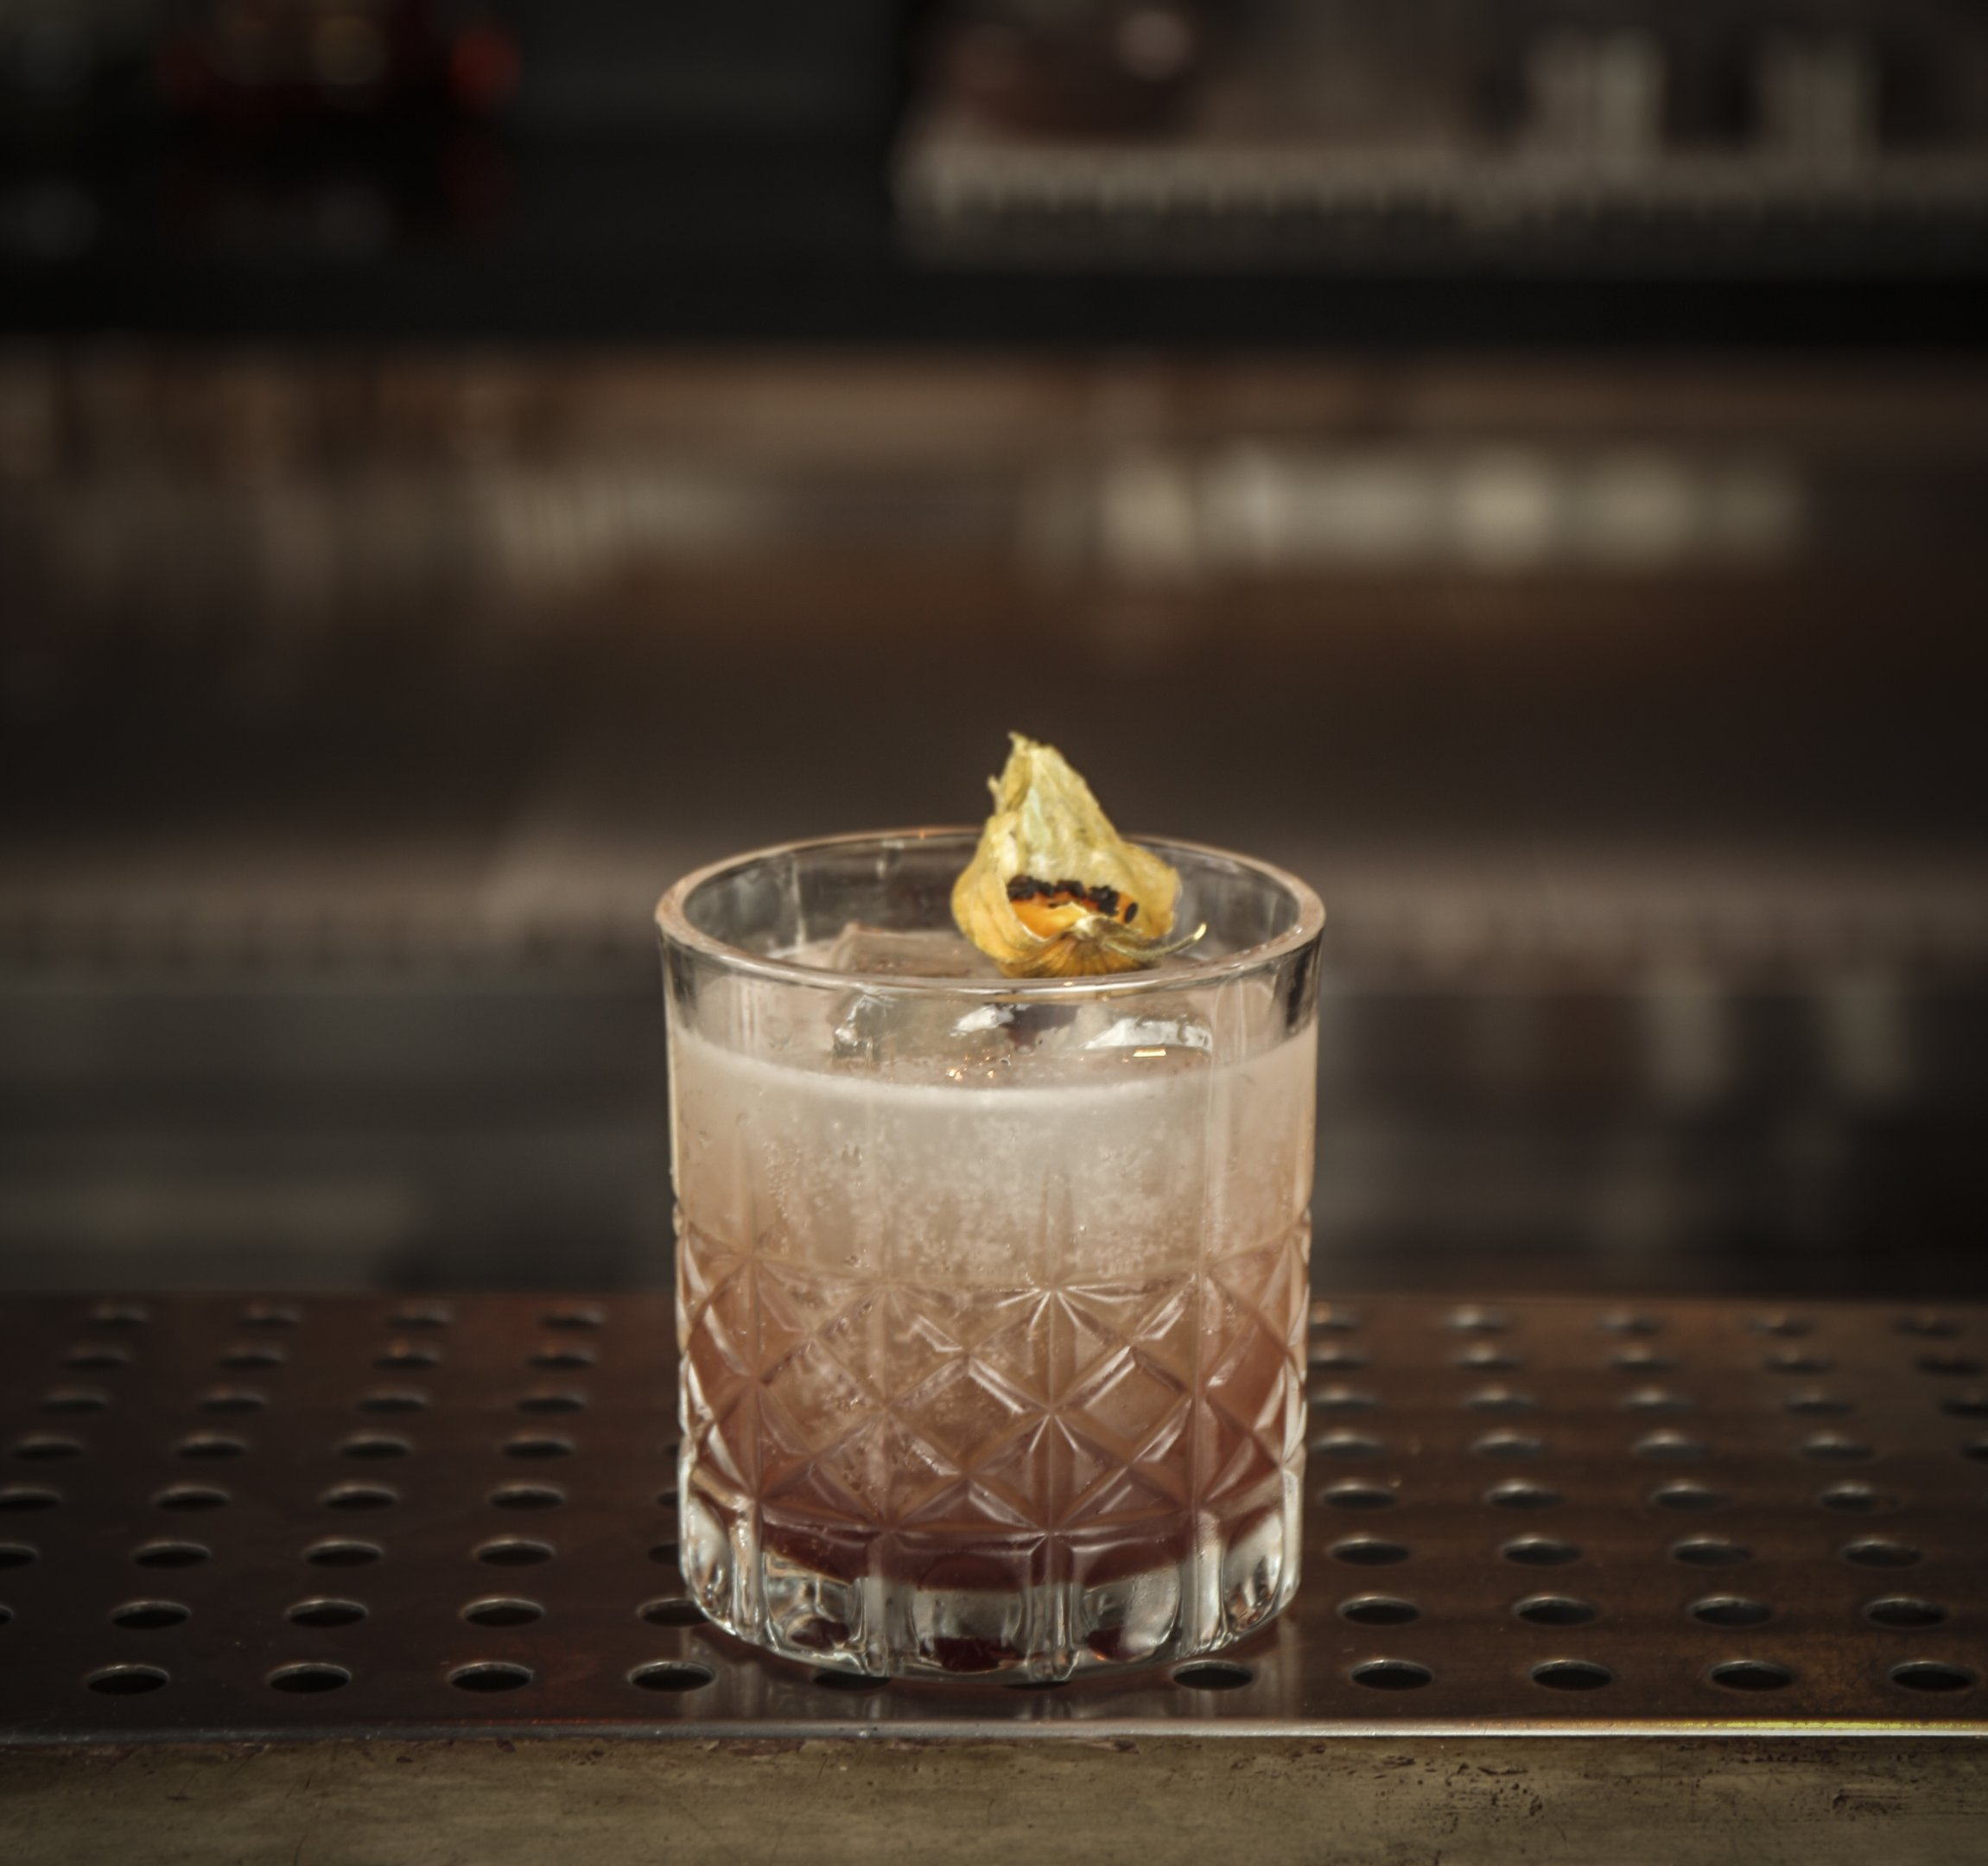 Cerejeira Robert Adair Five drinks with gin to celebrate the arrival of spring